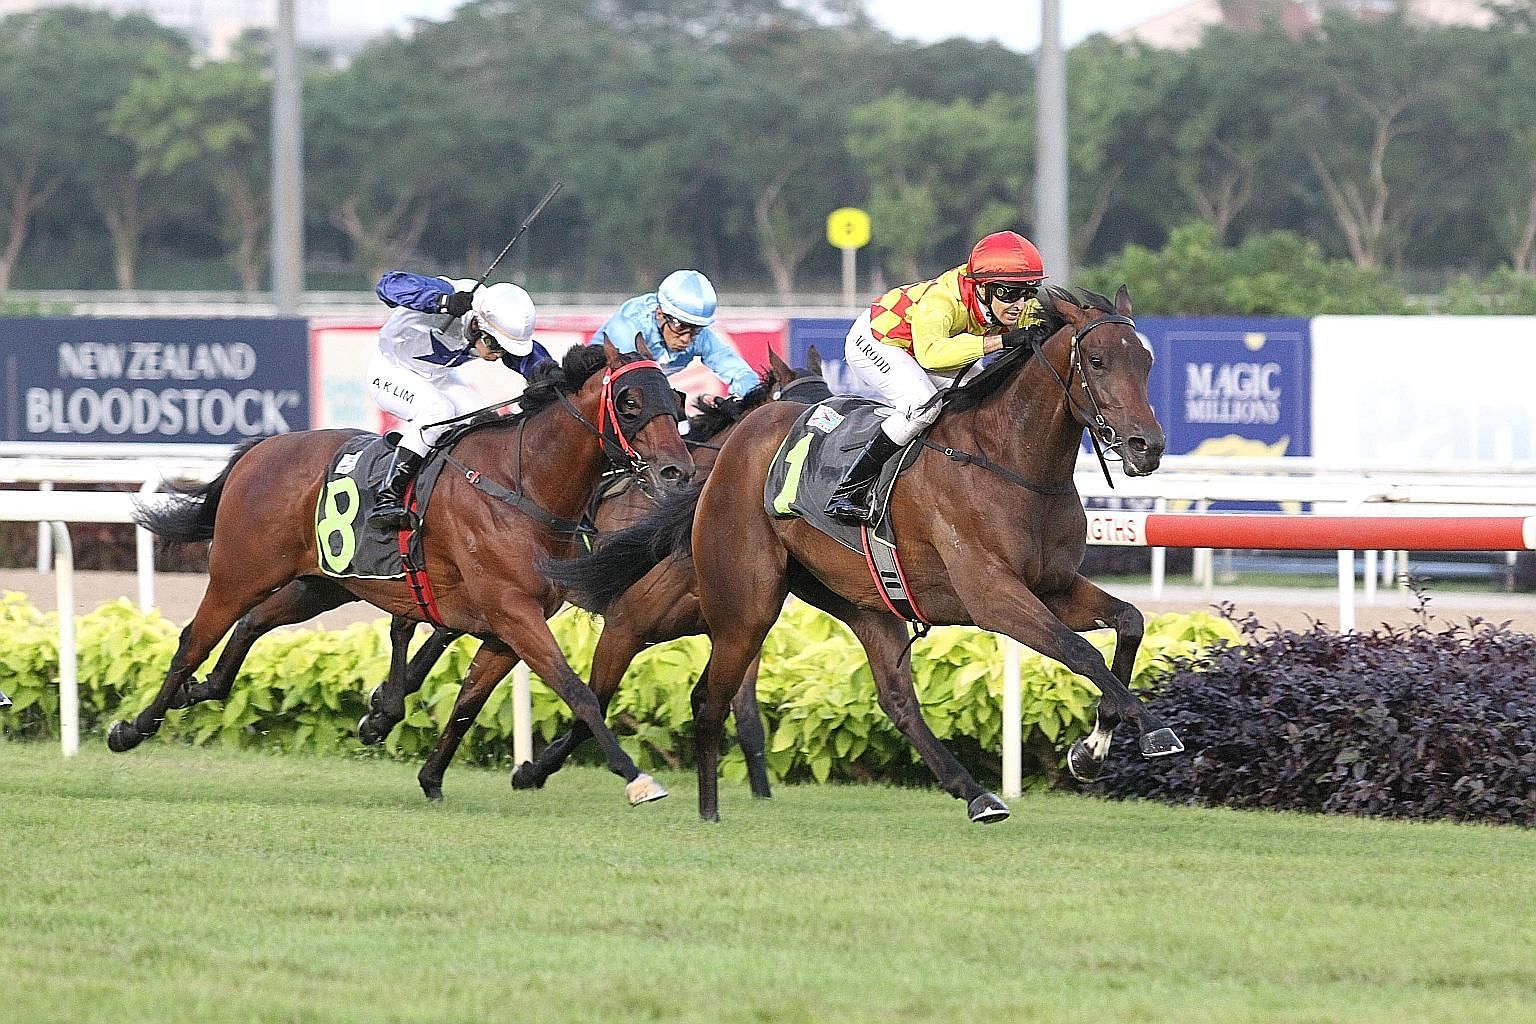 Gold Star (No. 1), the $11 favourite, producing great acceleration in the final 200m to take yesterday's $75,000 Restricted Maiden event over 1,200m on turf at Kranji.